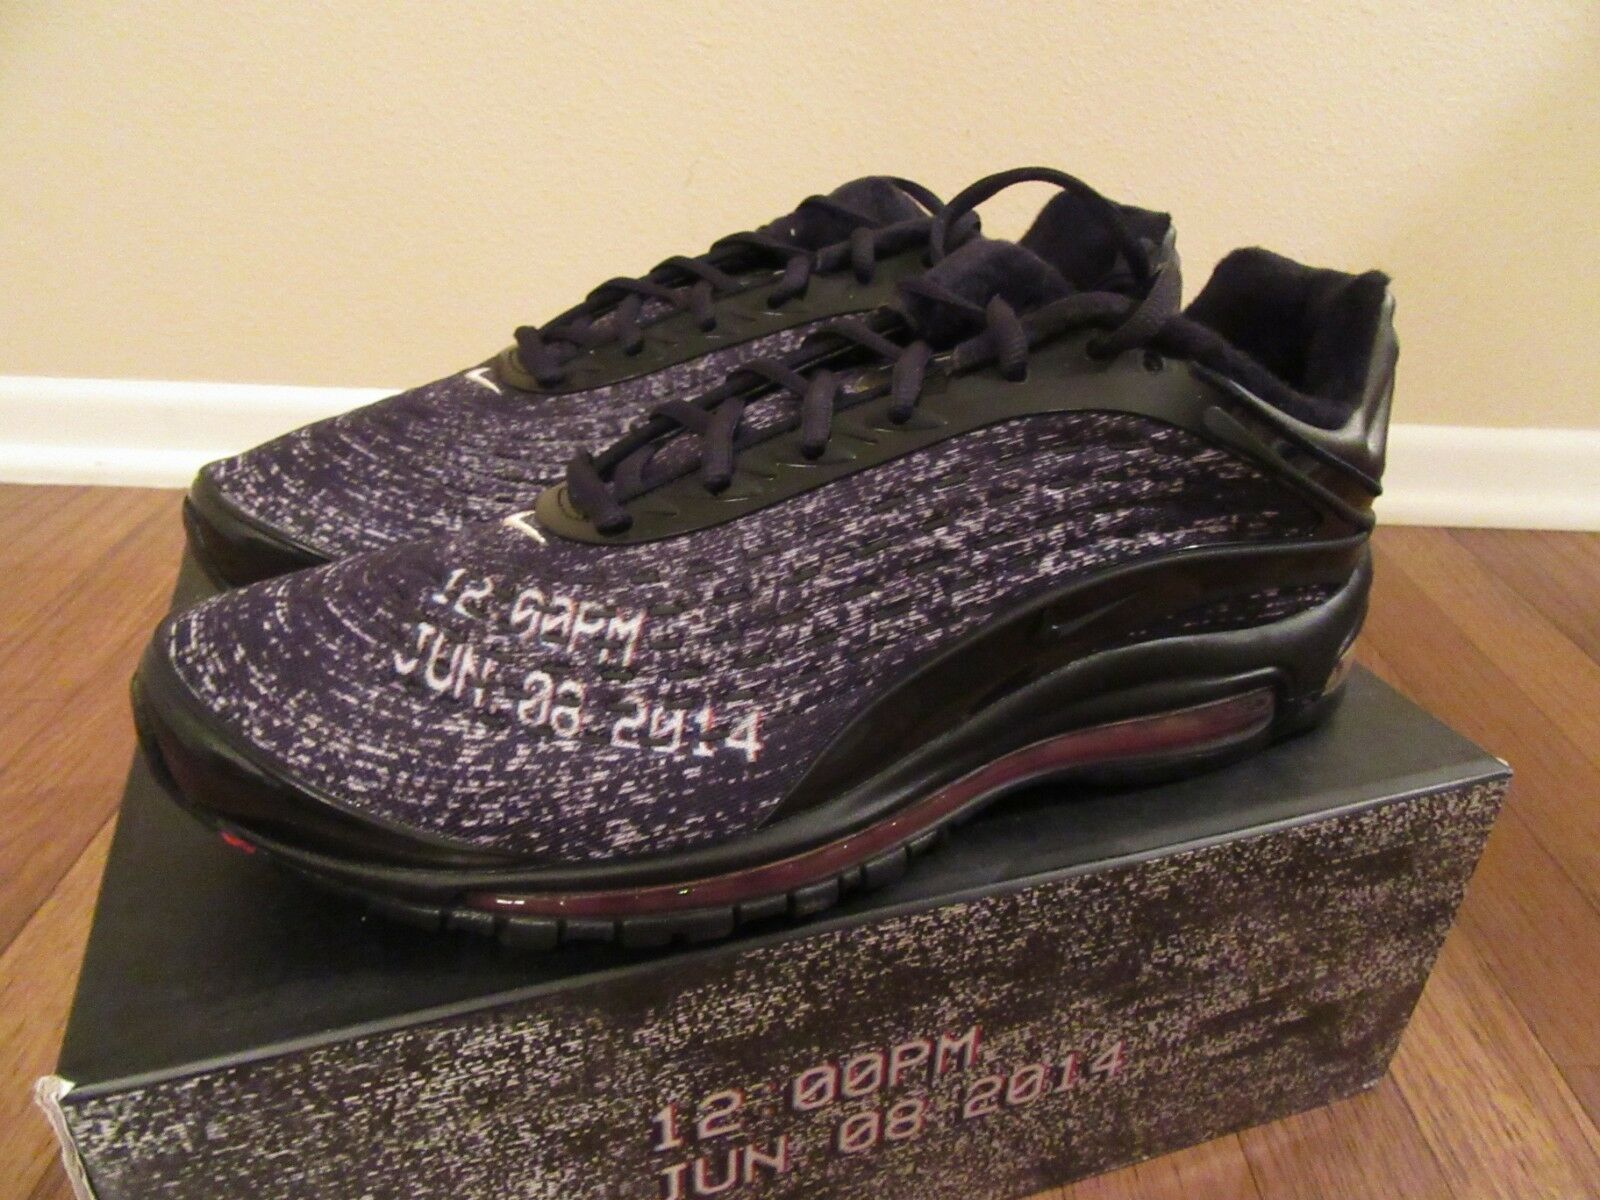 Nike Air Max Deluxe Skepta Size 11.5 Black Black Deep Red AQ9945 001 New NIB